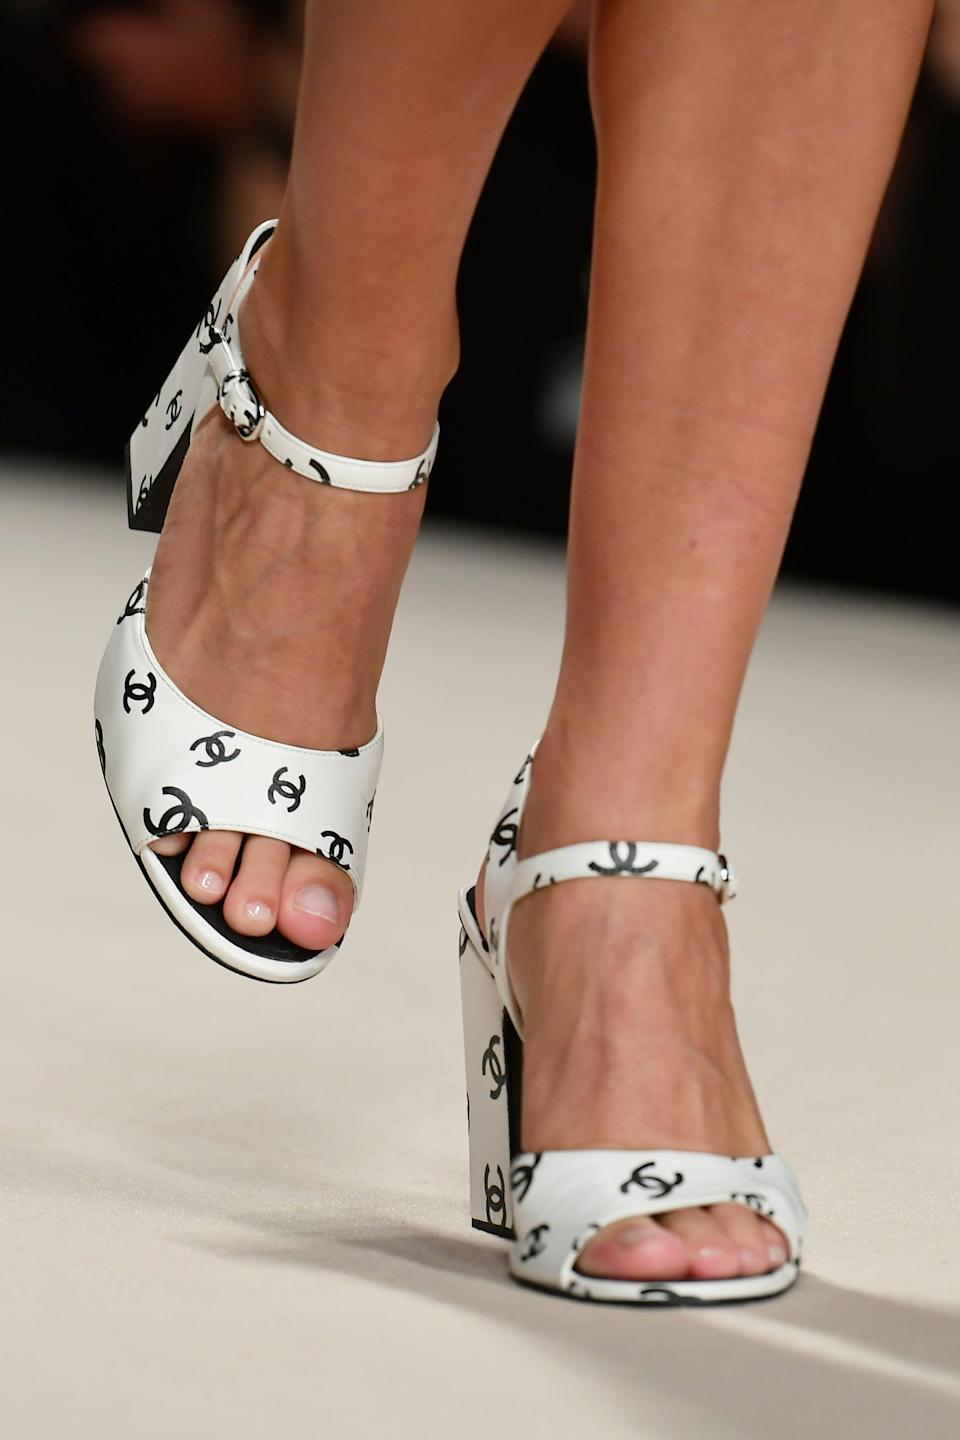 <p>Shoes from Chanel spring 2022 collection.</p>